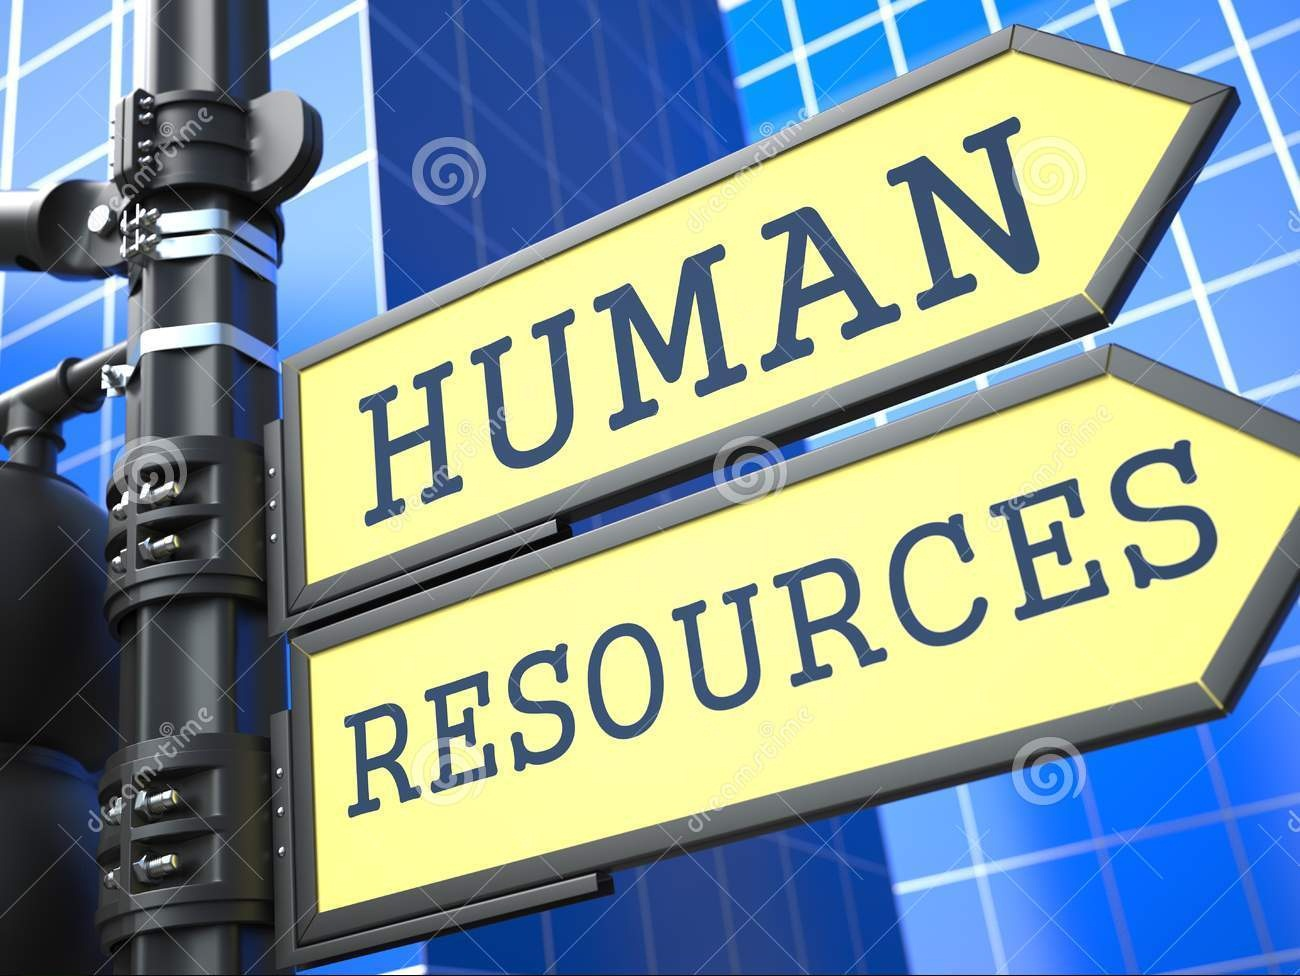 Unit 23 Managing Human Resources Assignment Walmart - Assignment Help in UK